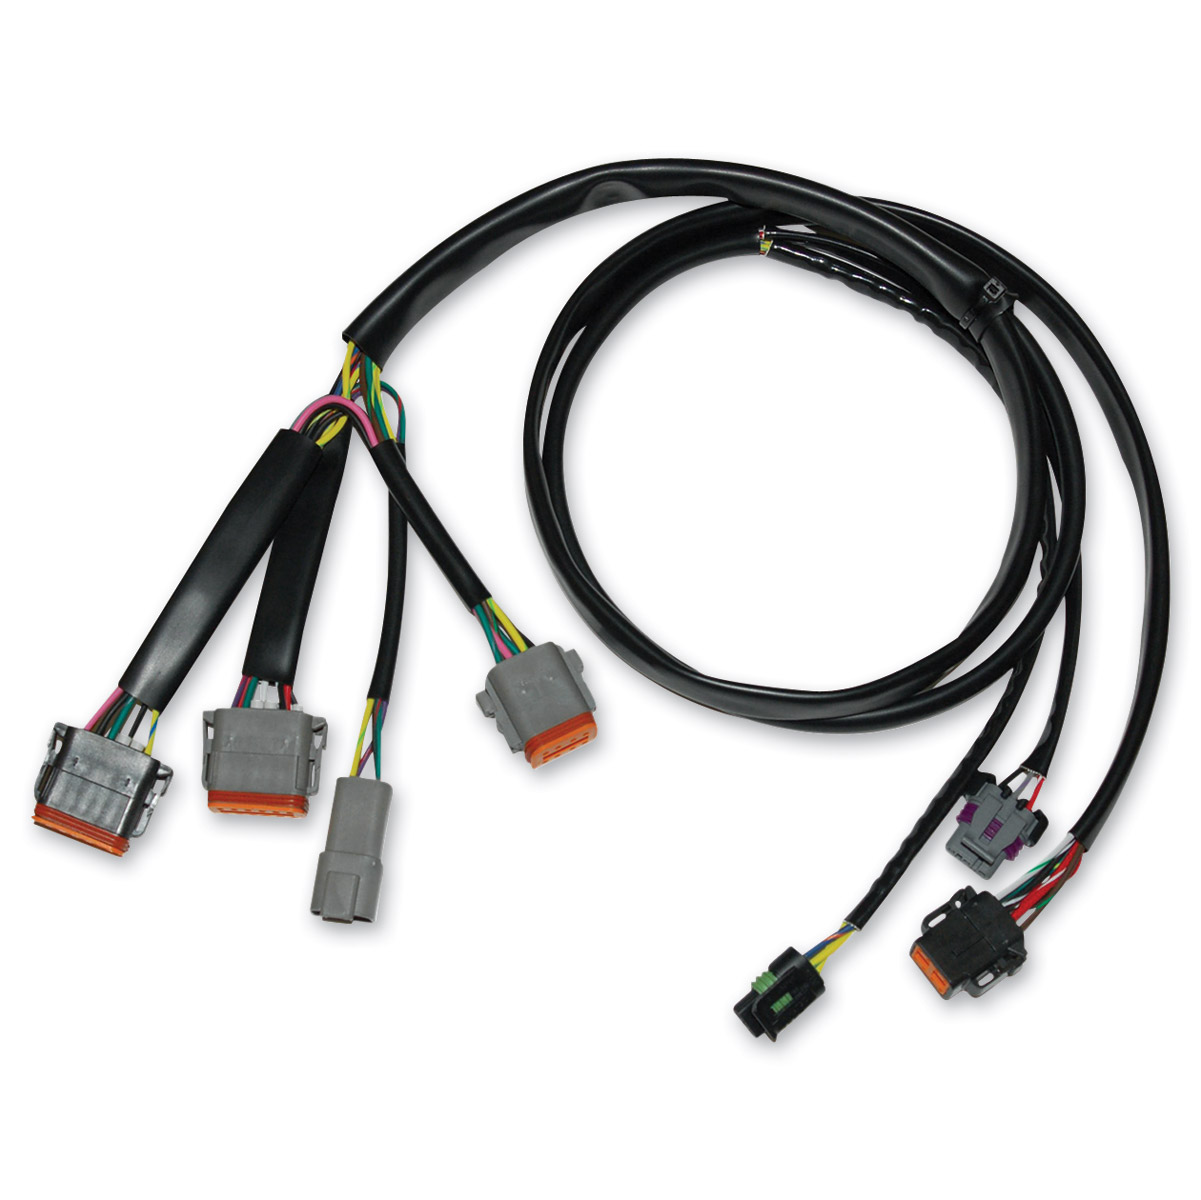 NAMZ Custom Cycle Complete Ignition Wiring Harness | 745-071 | J&P on battery harness, dog harness, electrical harness, oxygen sensor extension harness, engine harness, fall protection harness, cable harness, maxi-seal harness, pony harness, nakamichi harness, swing harness, alpine stereo harness, amp bypass harness, safety harness, suspension harness, pet harness, obd0 to obd1 conversion harness, radio harness,